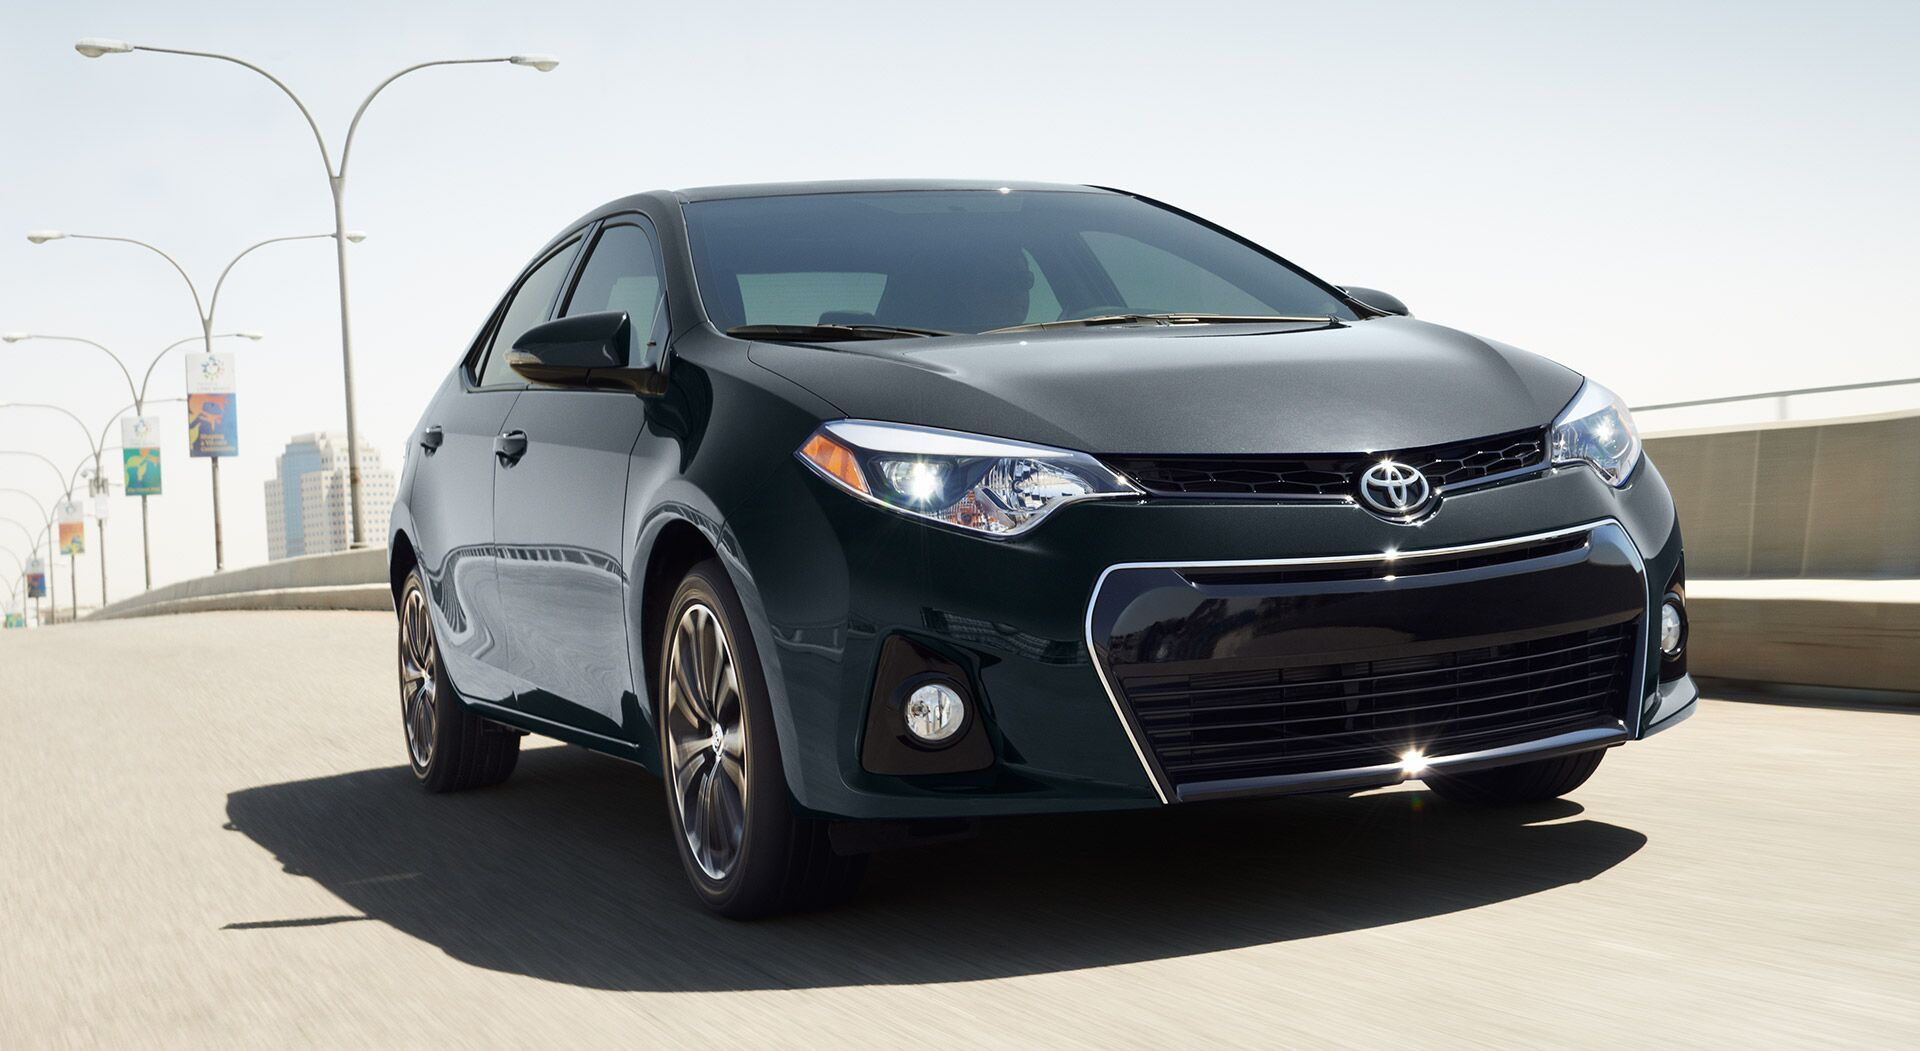 Phil Long Toyota of Trinidad